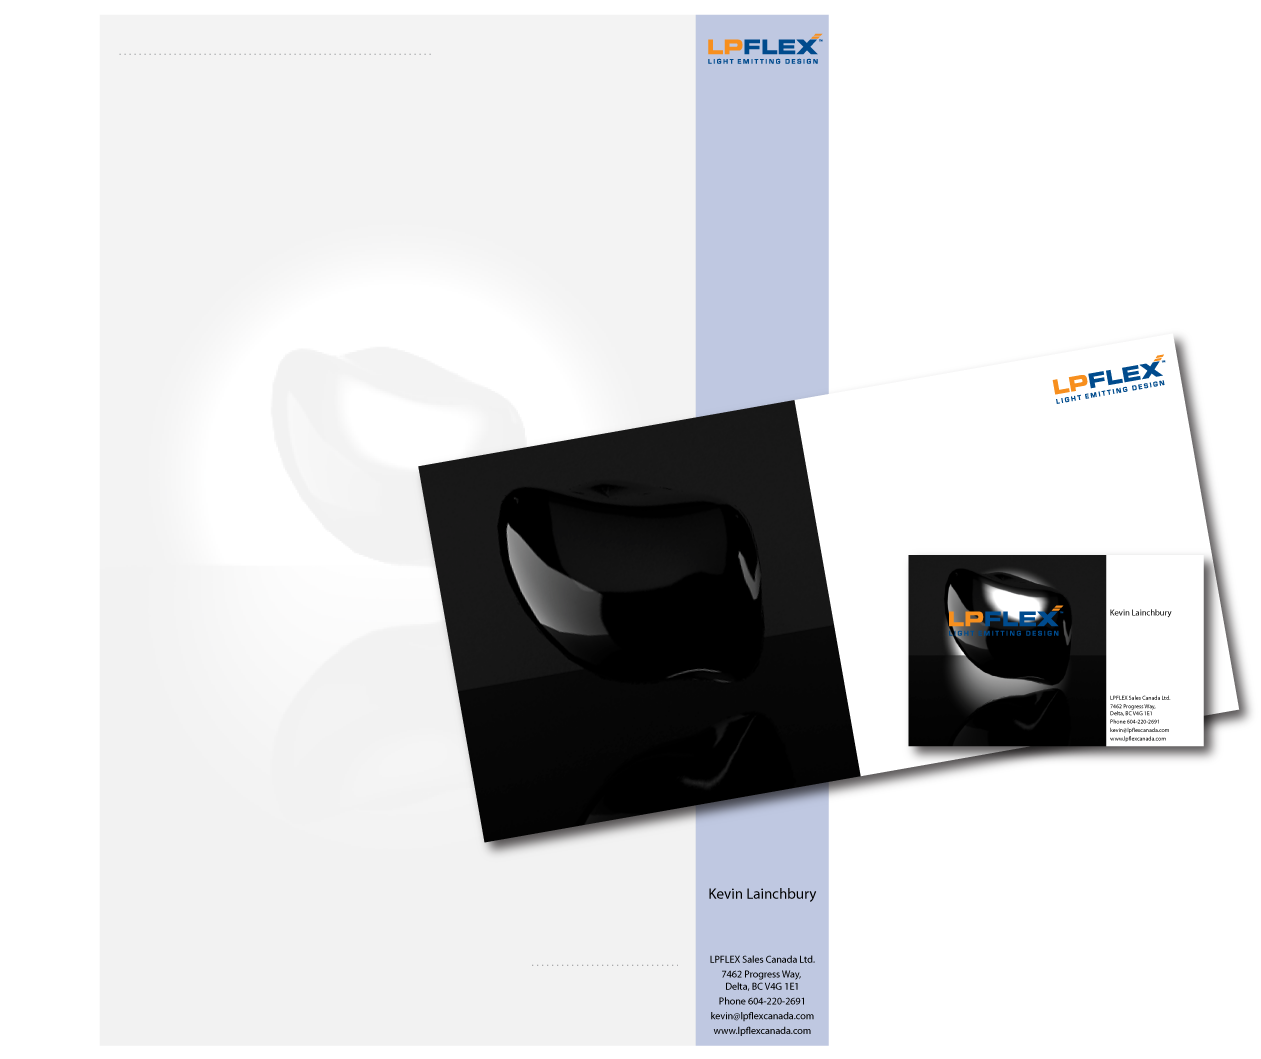 Logo Design by modo - Entry No. 52 in the Logo Design Contest Business Card Design & Stationery for Sign Company.